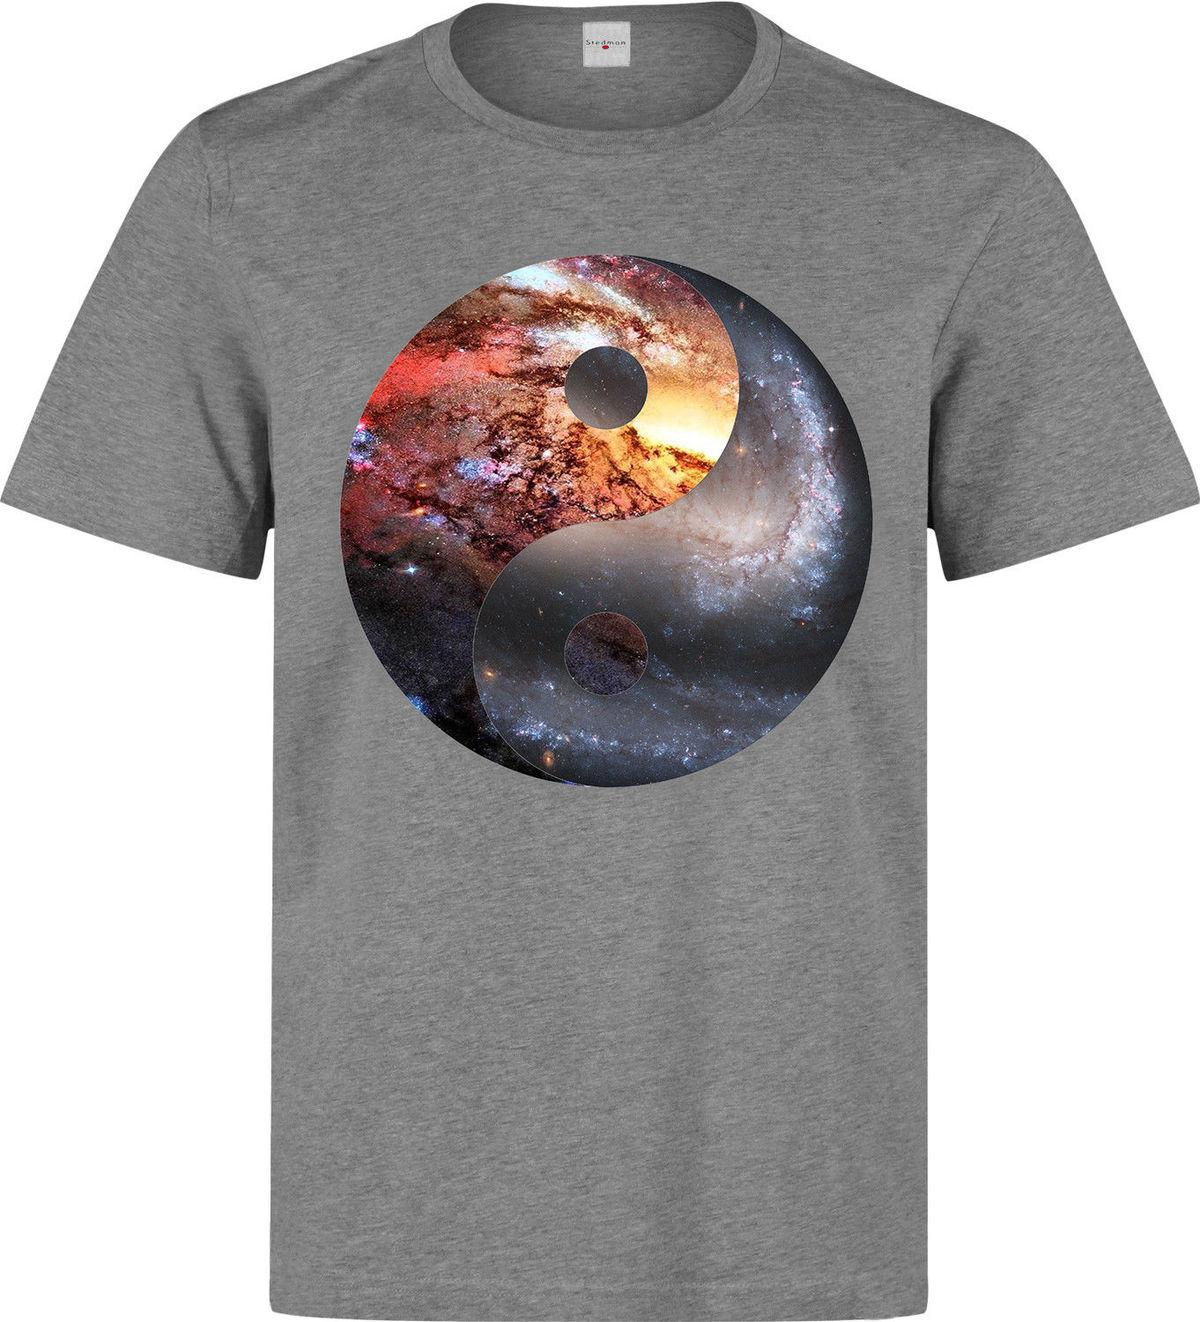 Yin And Yang Cosmic Nebula Art men (woman's available) grey t shirt quality top New Men Cotton T-Shirt